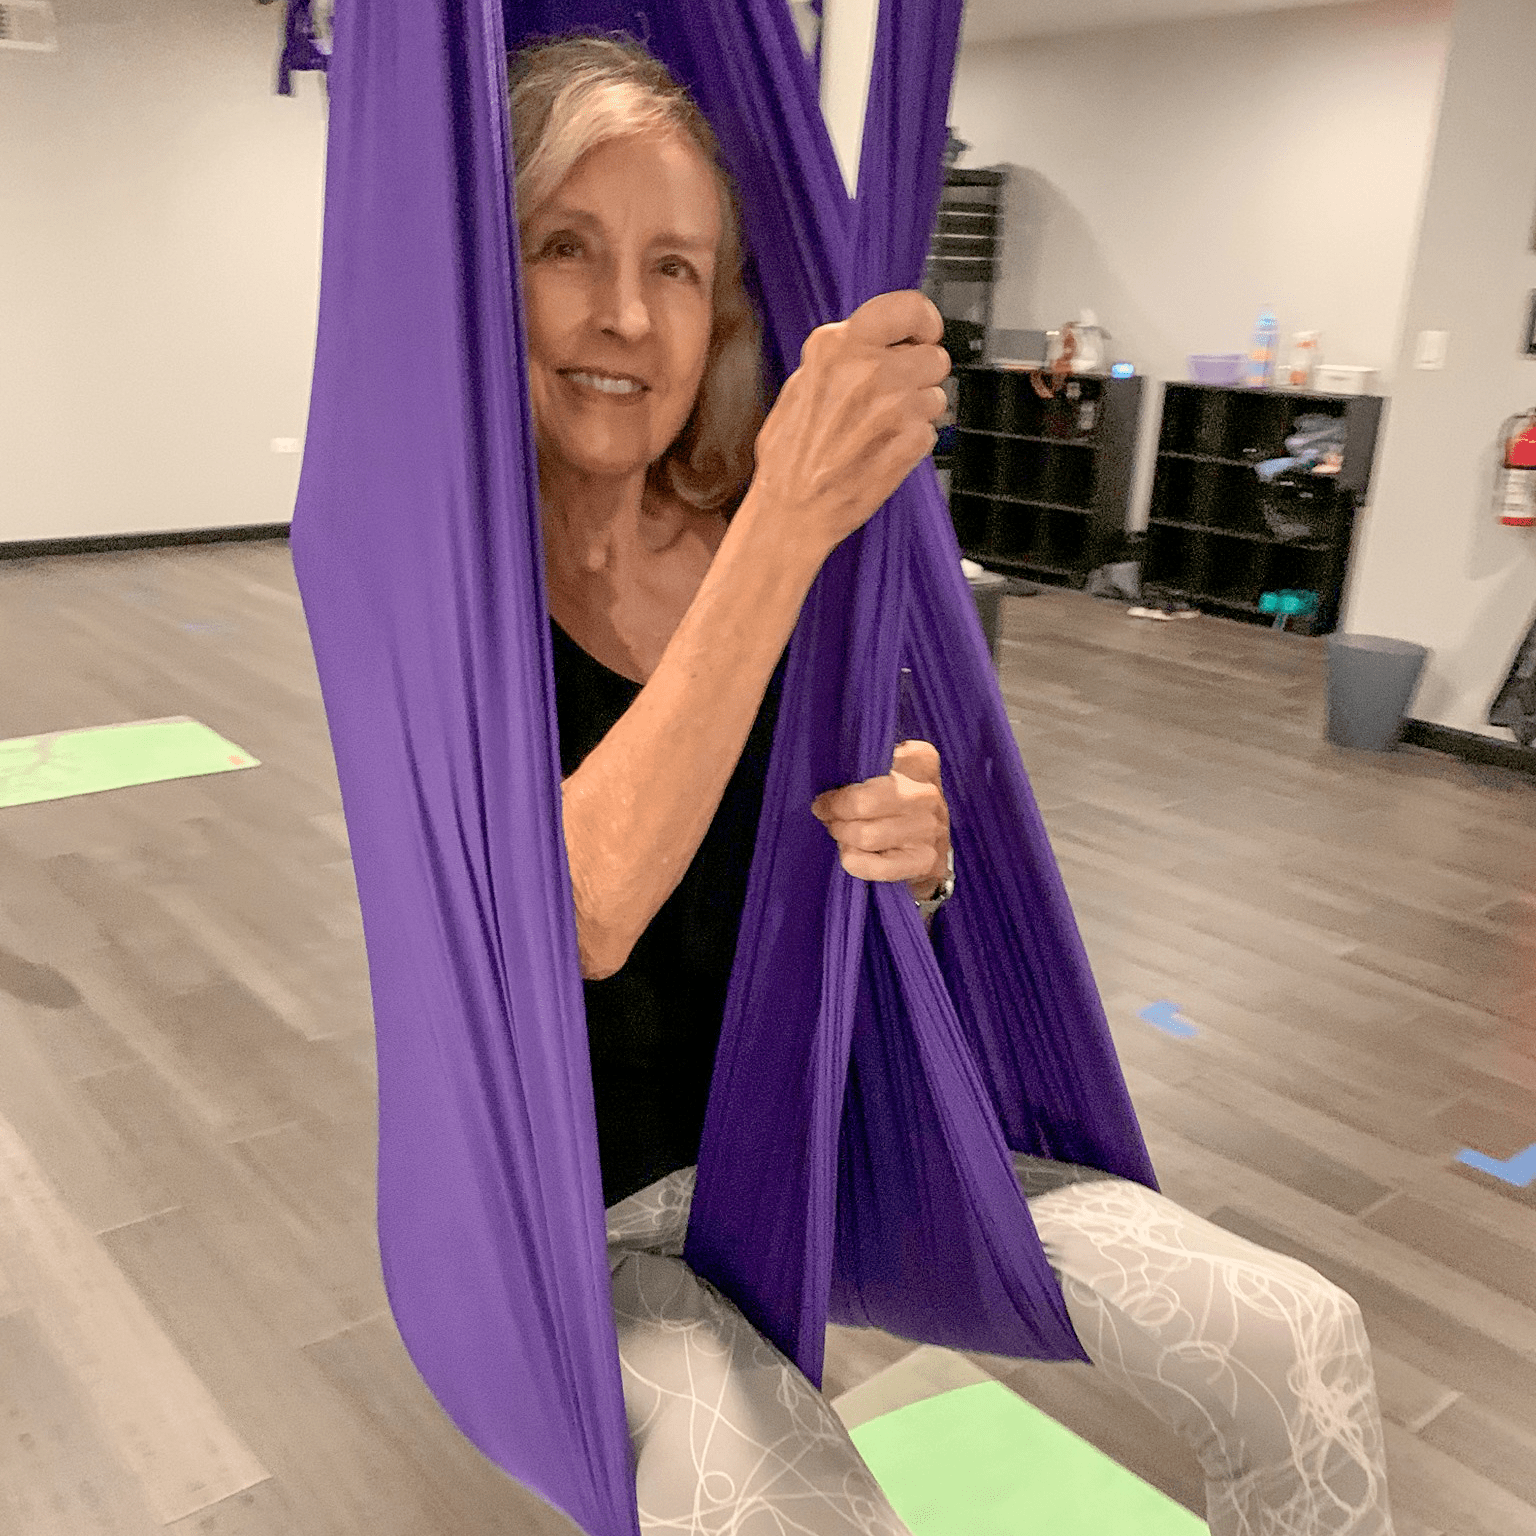 Garlands member, Deanne Born, hangs out at aerial yoga class.